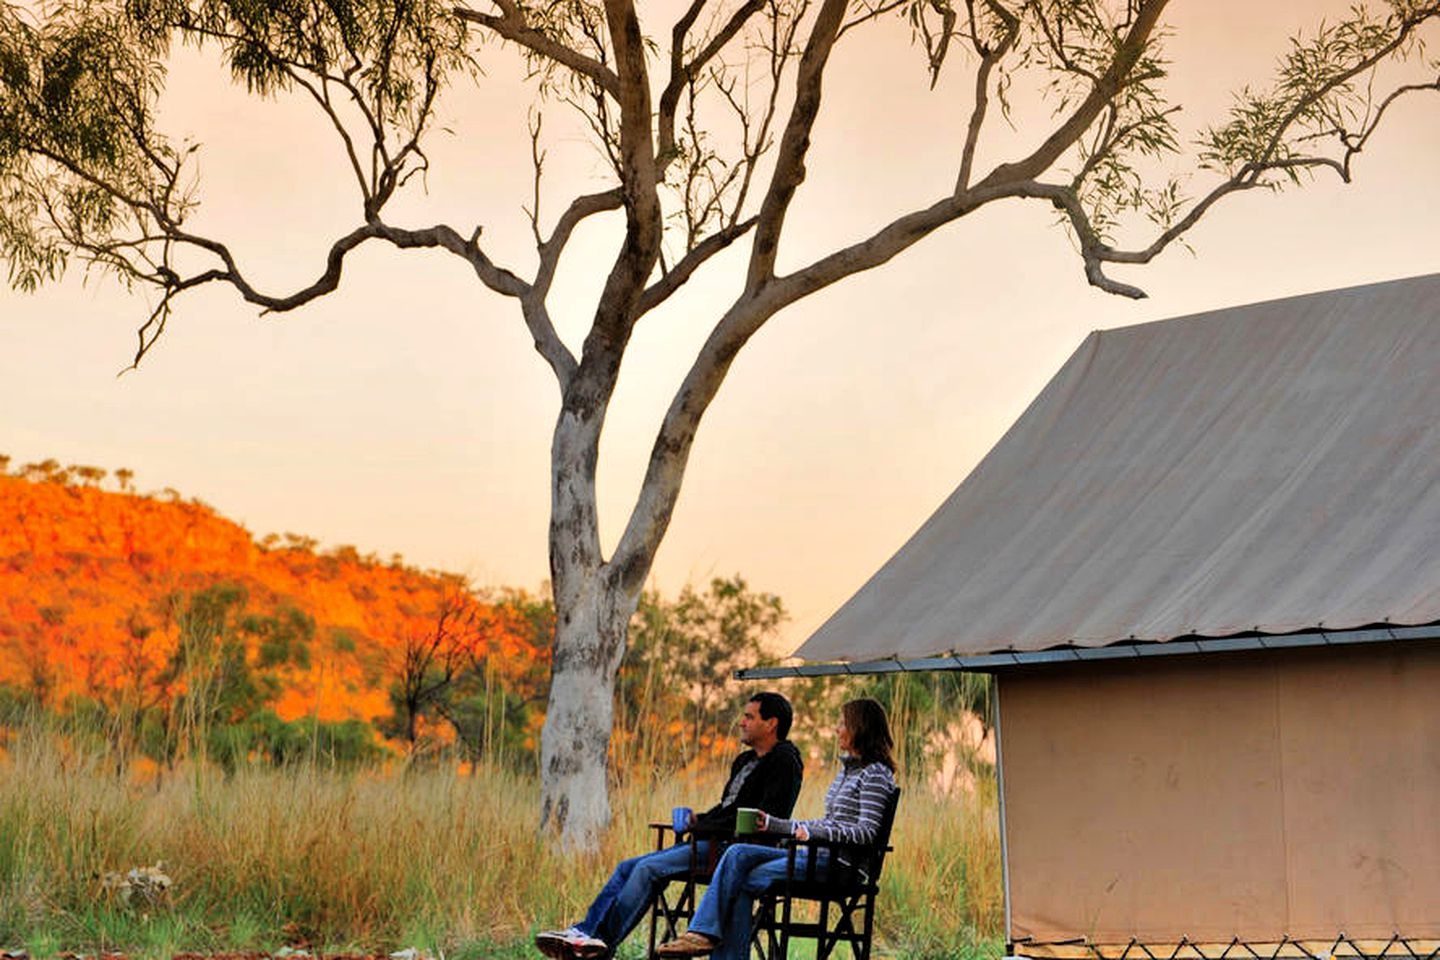 This Imintji campground is ideal for glamping in Western Australia